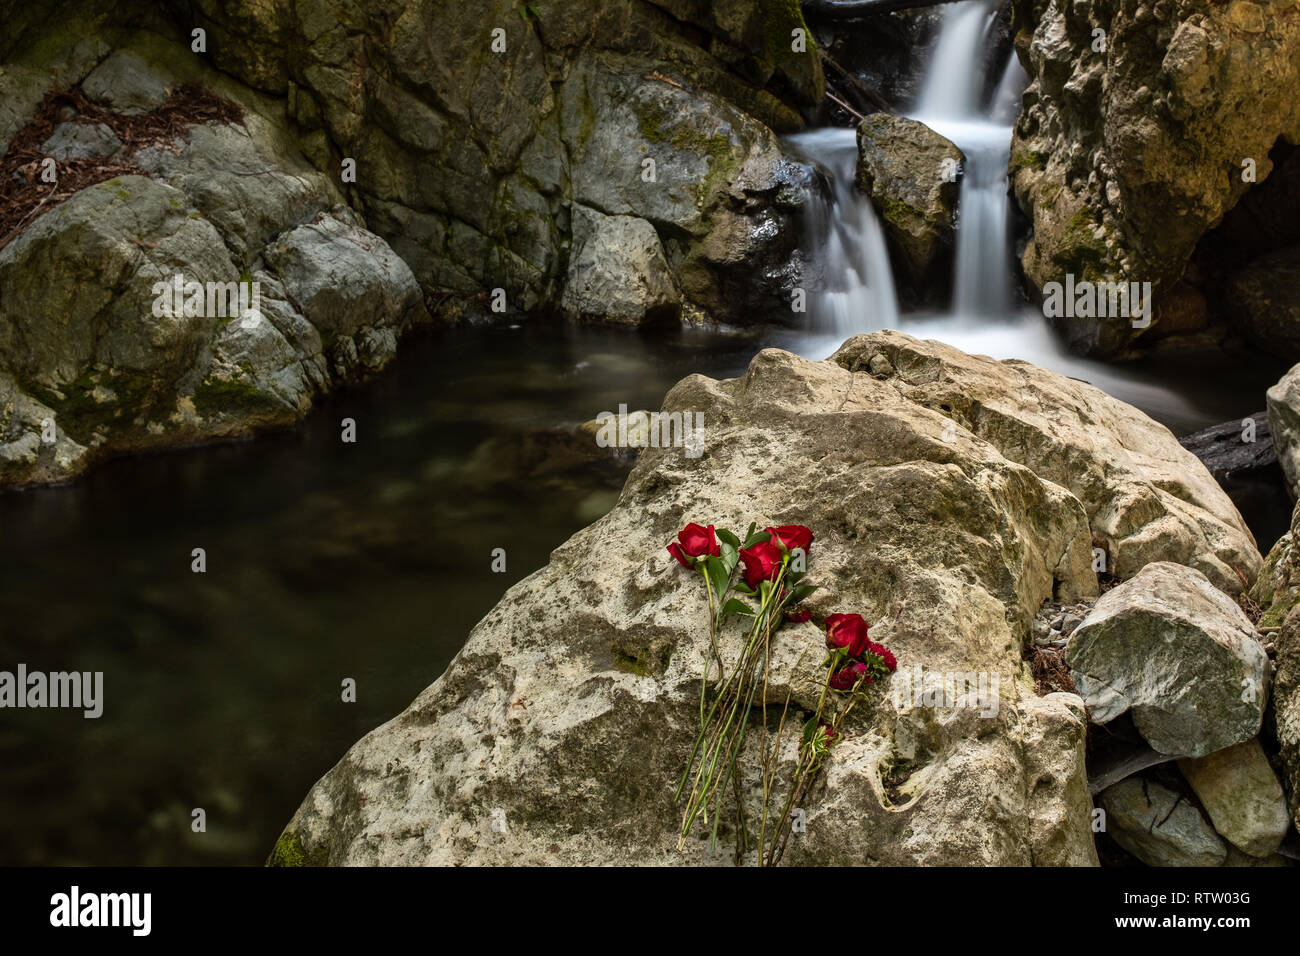 A waterfall in Limekiln State park, Big Sur with red roses in the foreground placed on rock in front of waterfall, long exposure to smooth out the wat Stock Photo